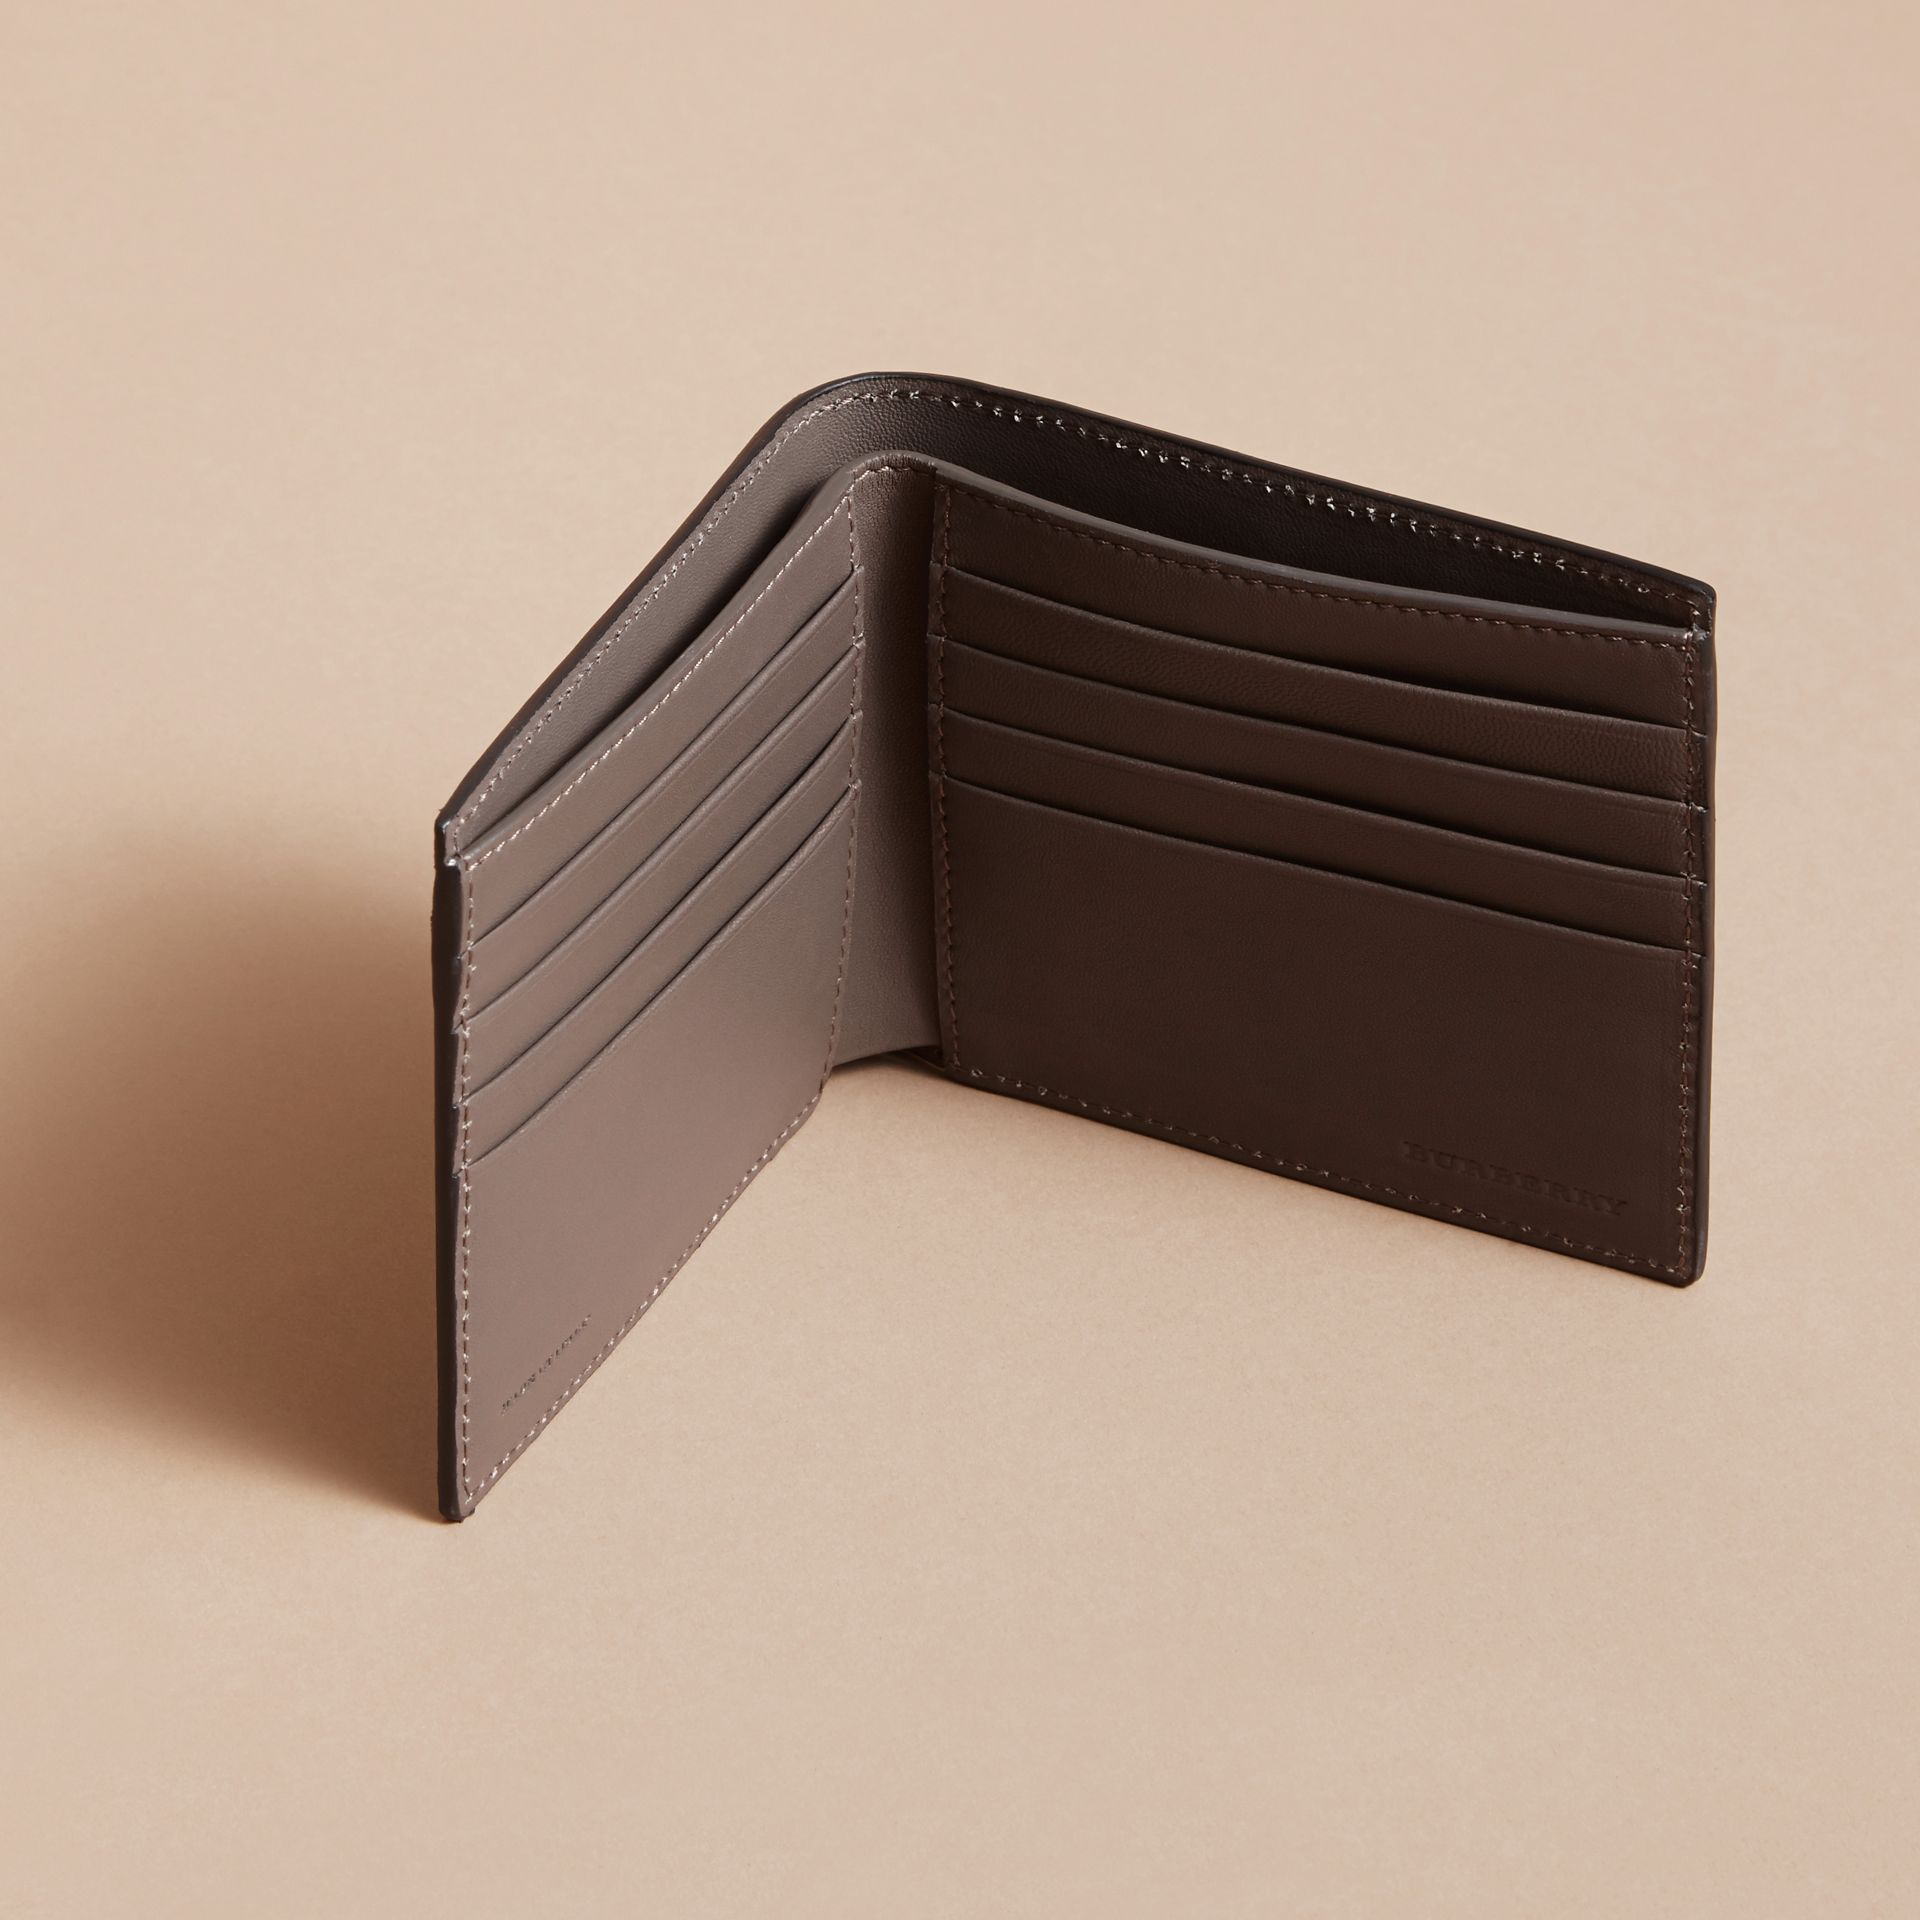 Beasts Print Leather Folding Wallet in Navy Grey - Men | Burberry - gallery image 5